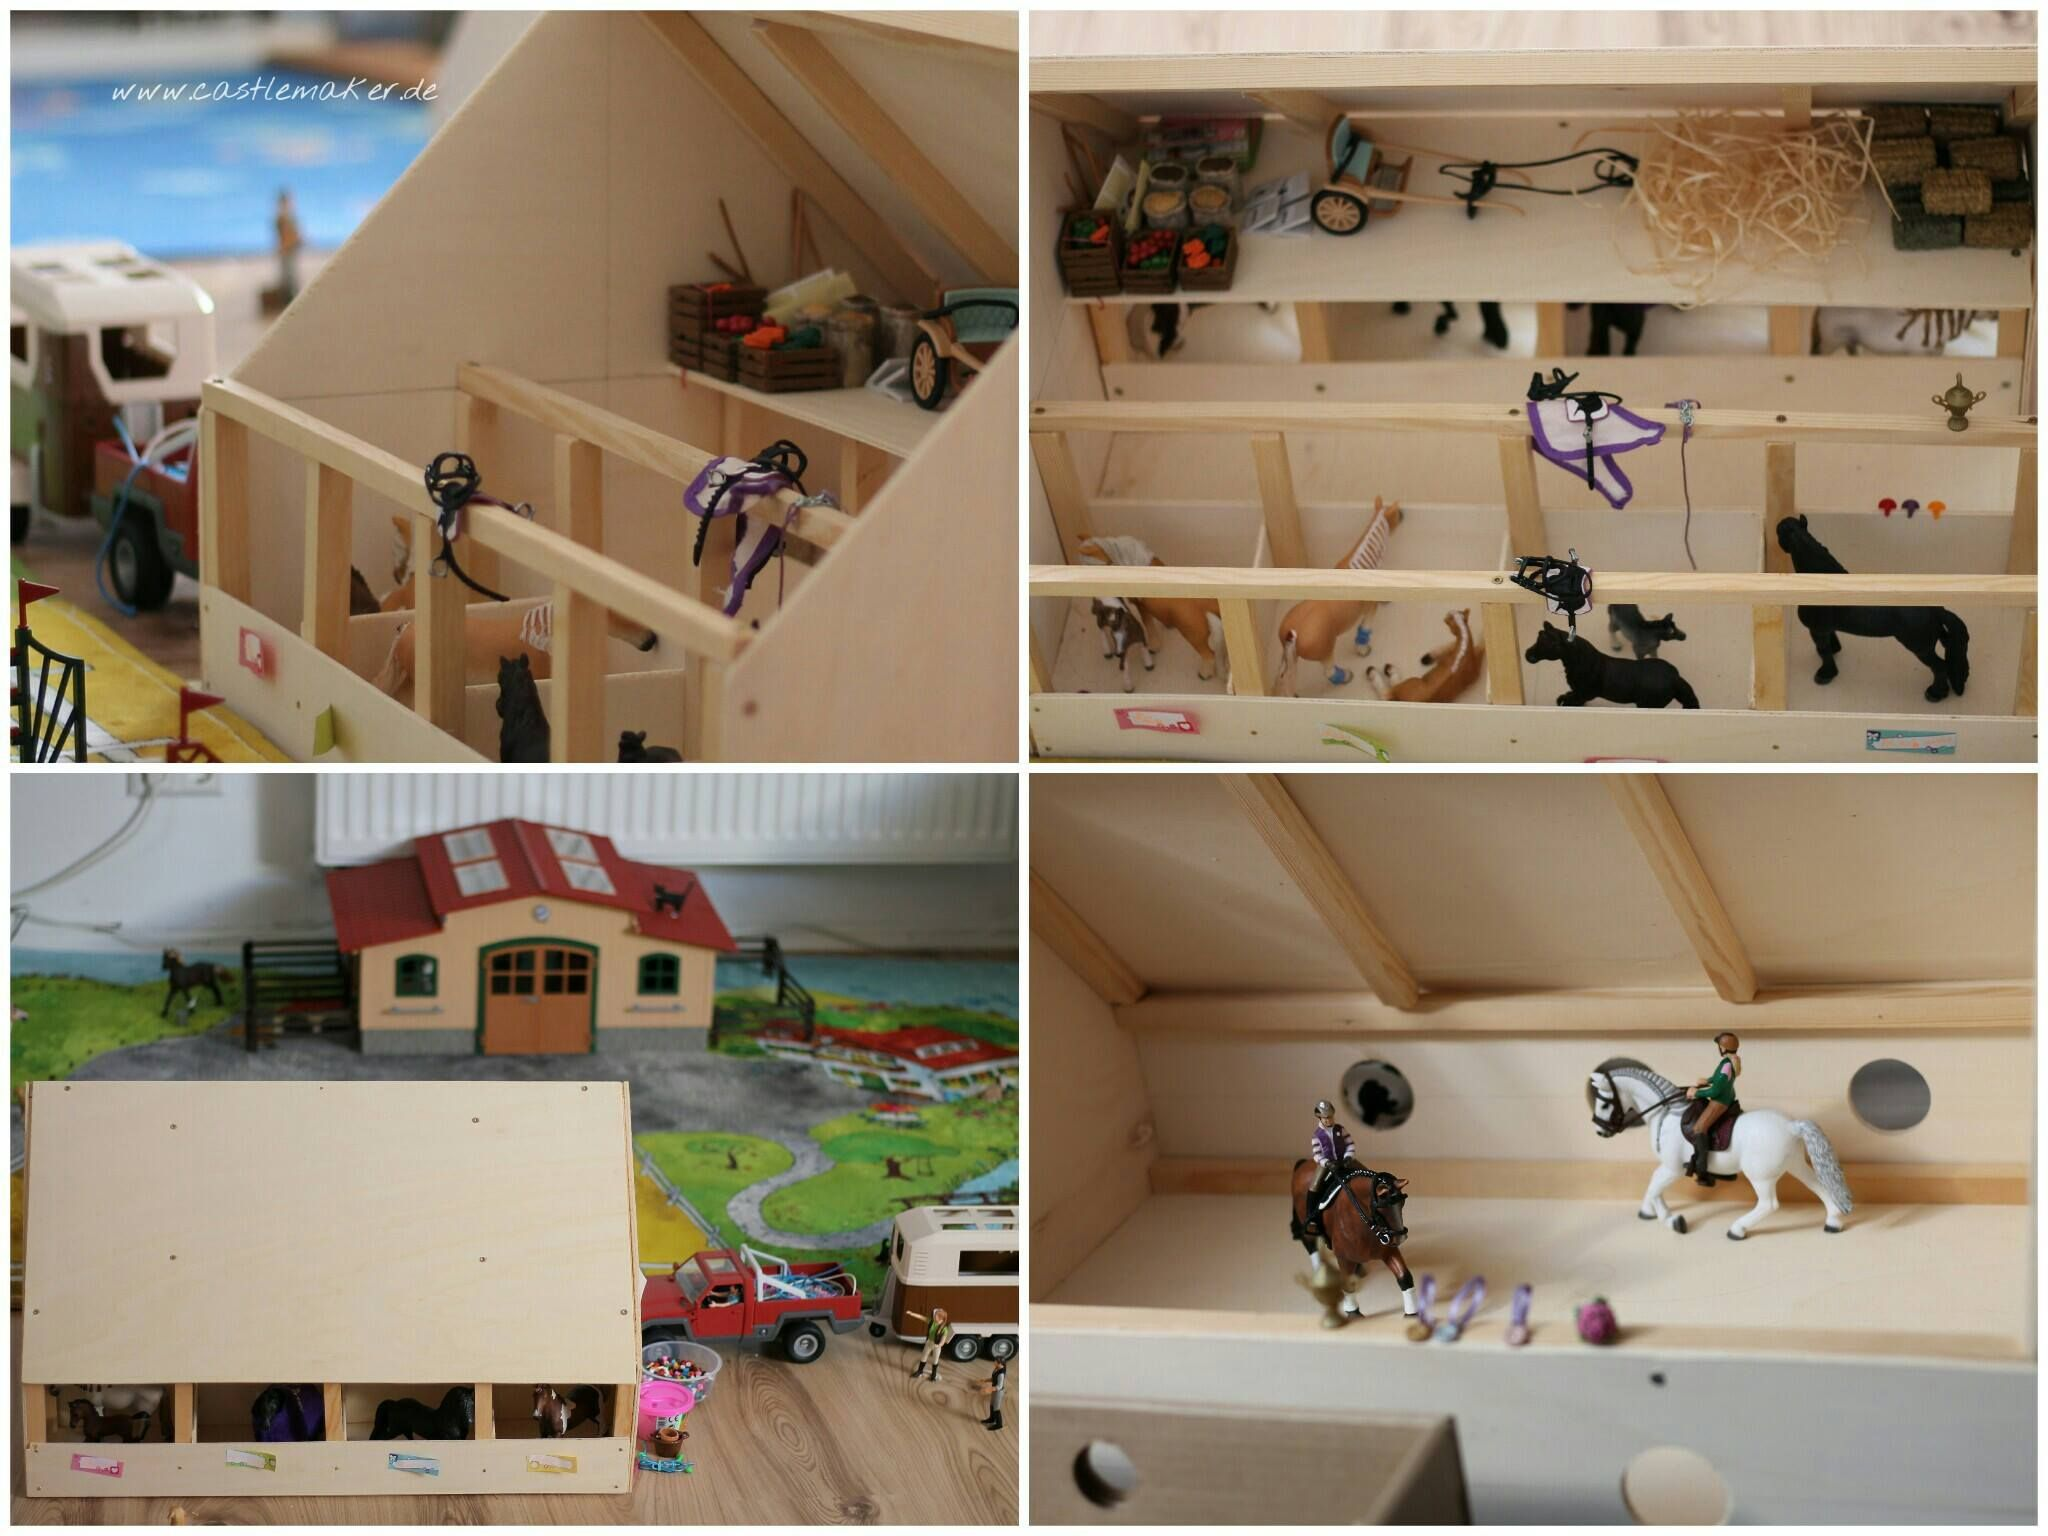 diy wir bauen einen schleich pferdestall reithalle horse playmobil and doll house plans. Black Bedroom Furniture Sets. Home Design Ideas